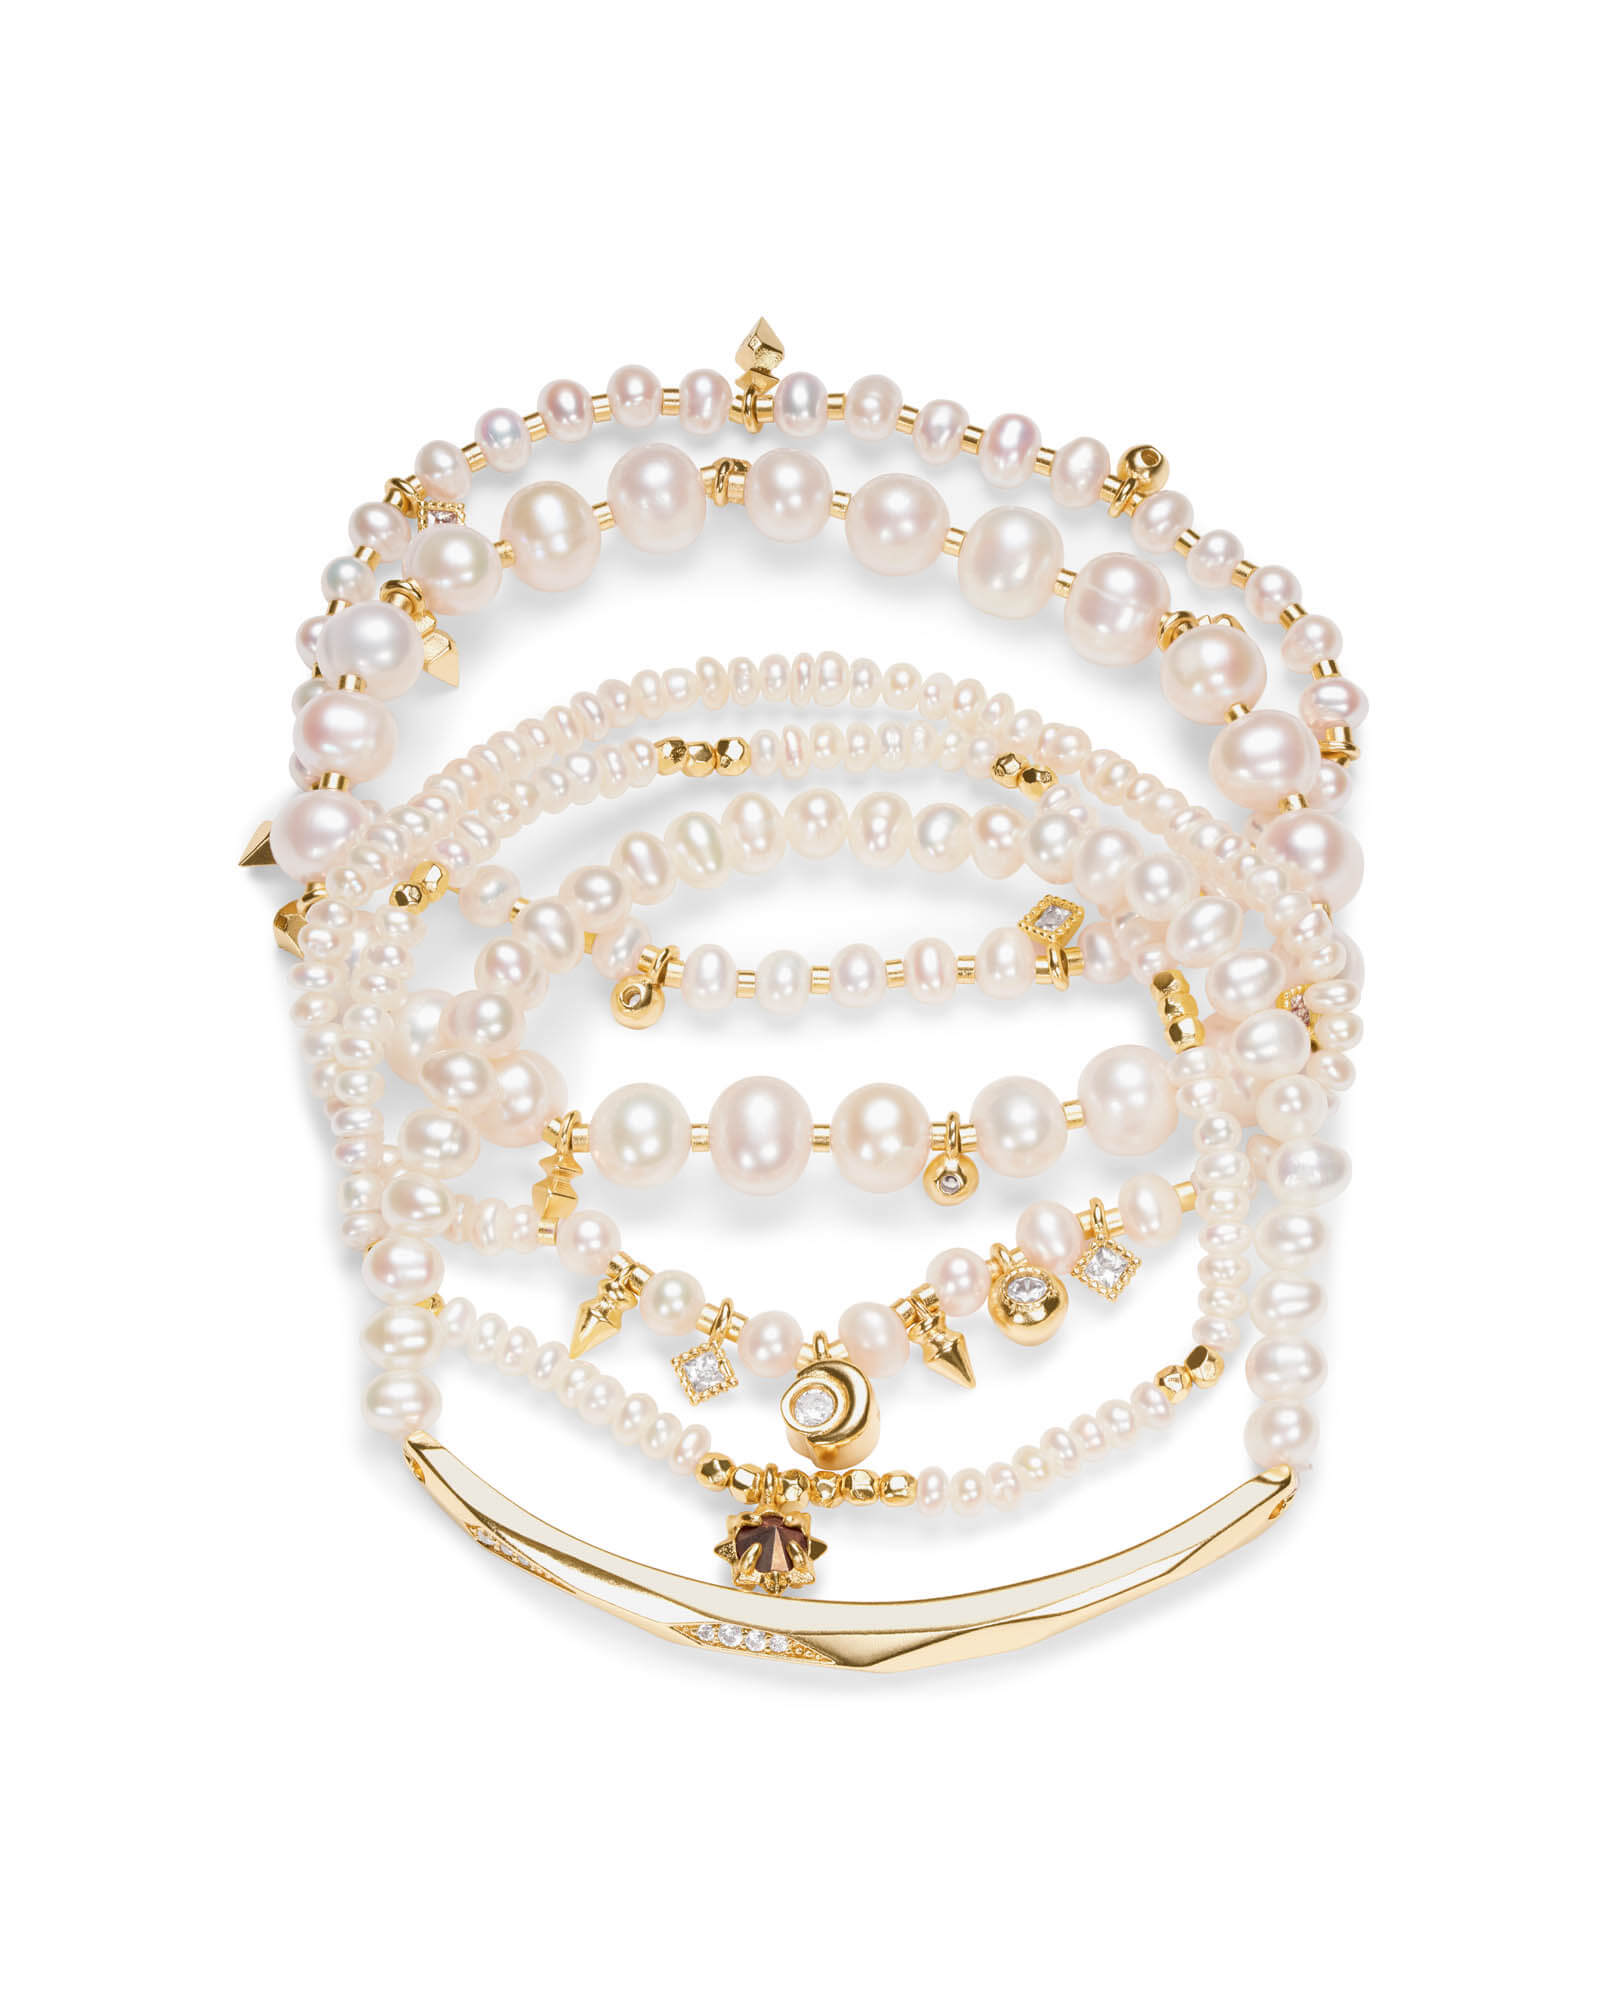 Supak Gold Beaded Bracelet Set in White Pearl